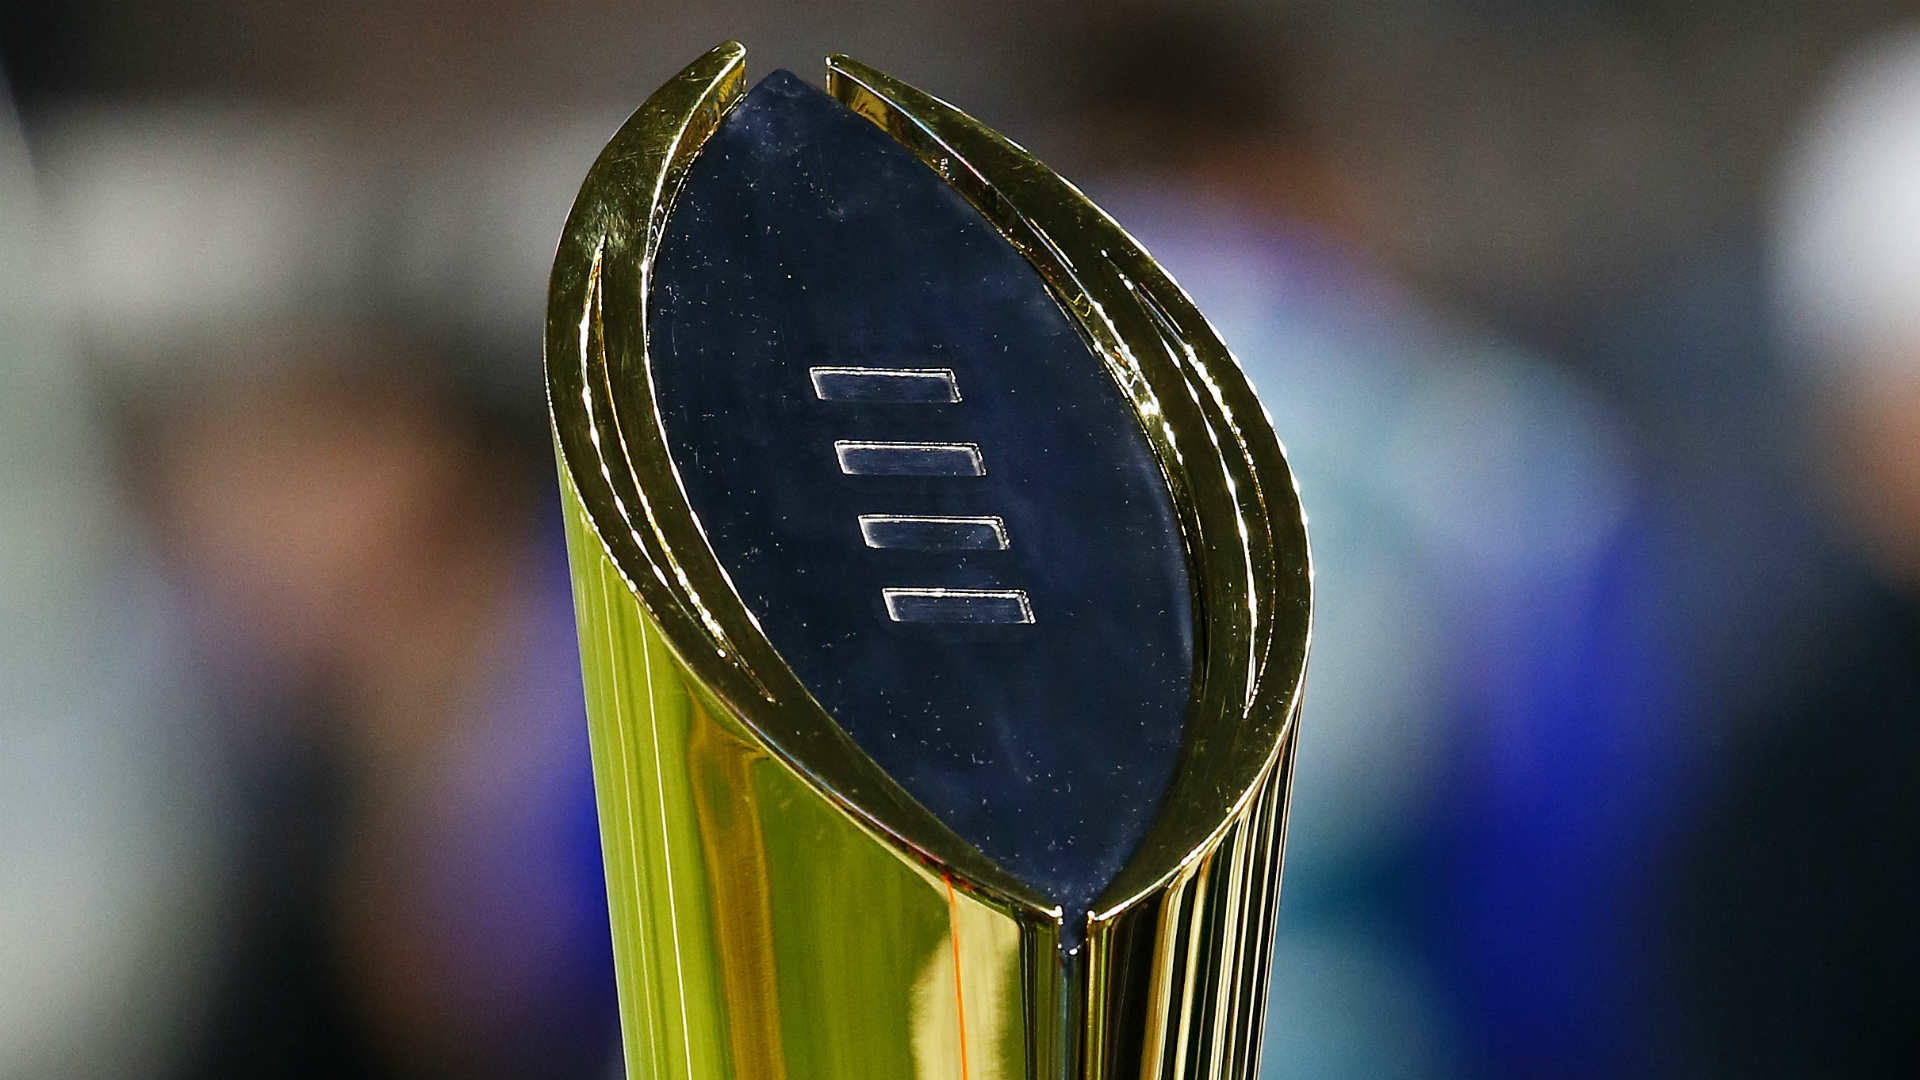 cfp-trophy-122016-us-news-getty-ftr